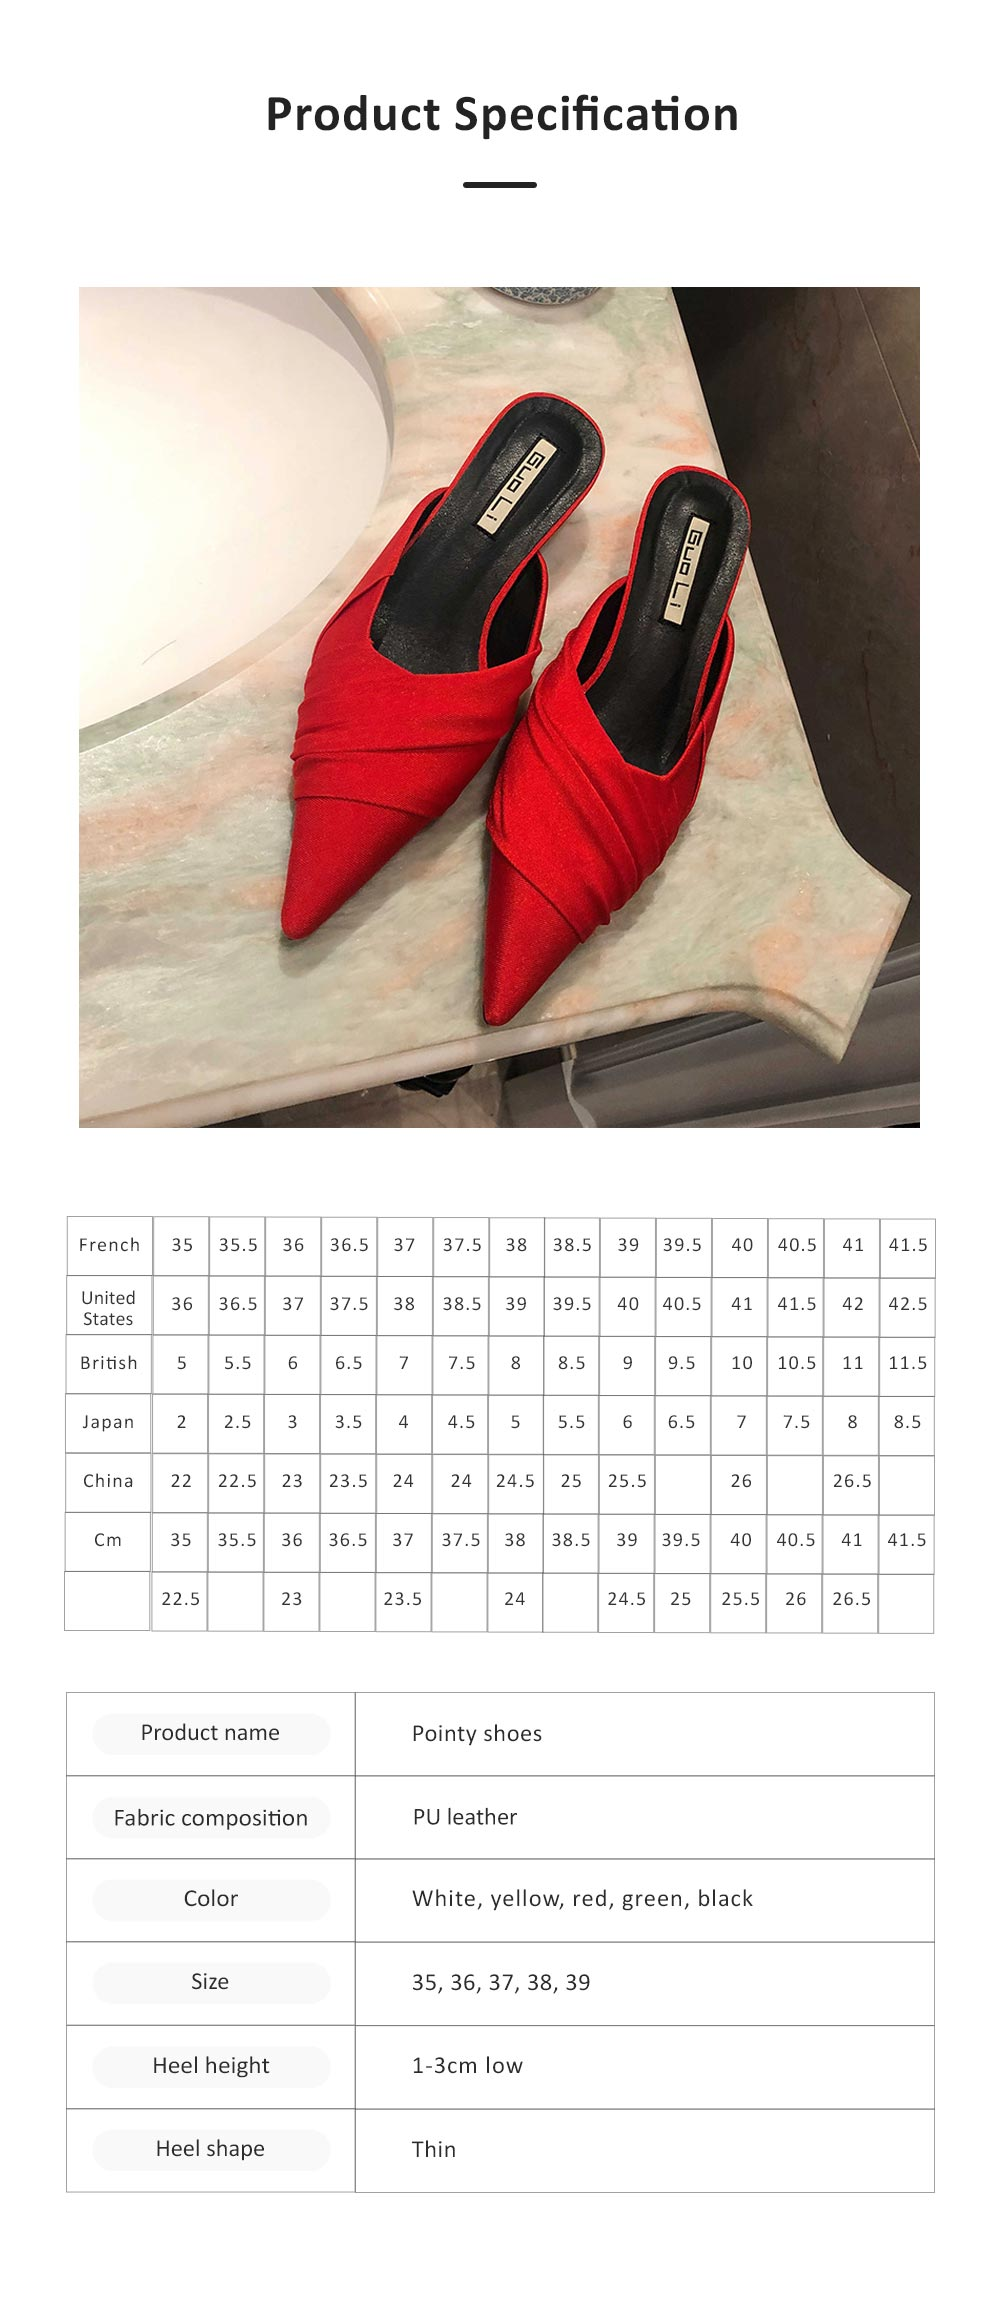 Pointy Shoes for Women, Low-heeled Waterproof Platform Sandals, Leather Material without Heelpiece Slippers 6